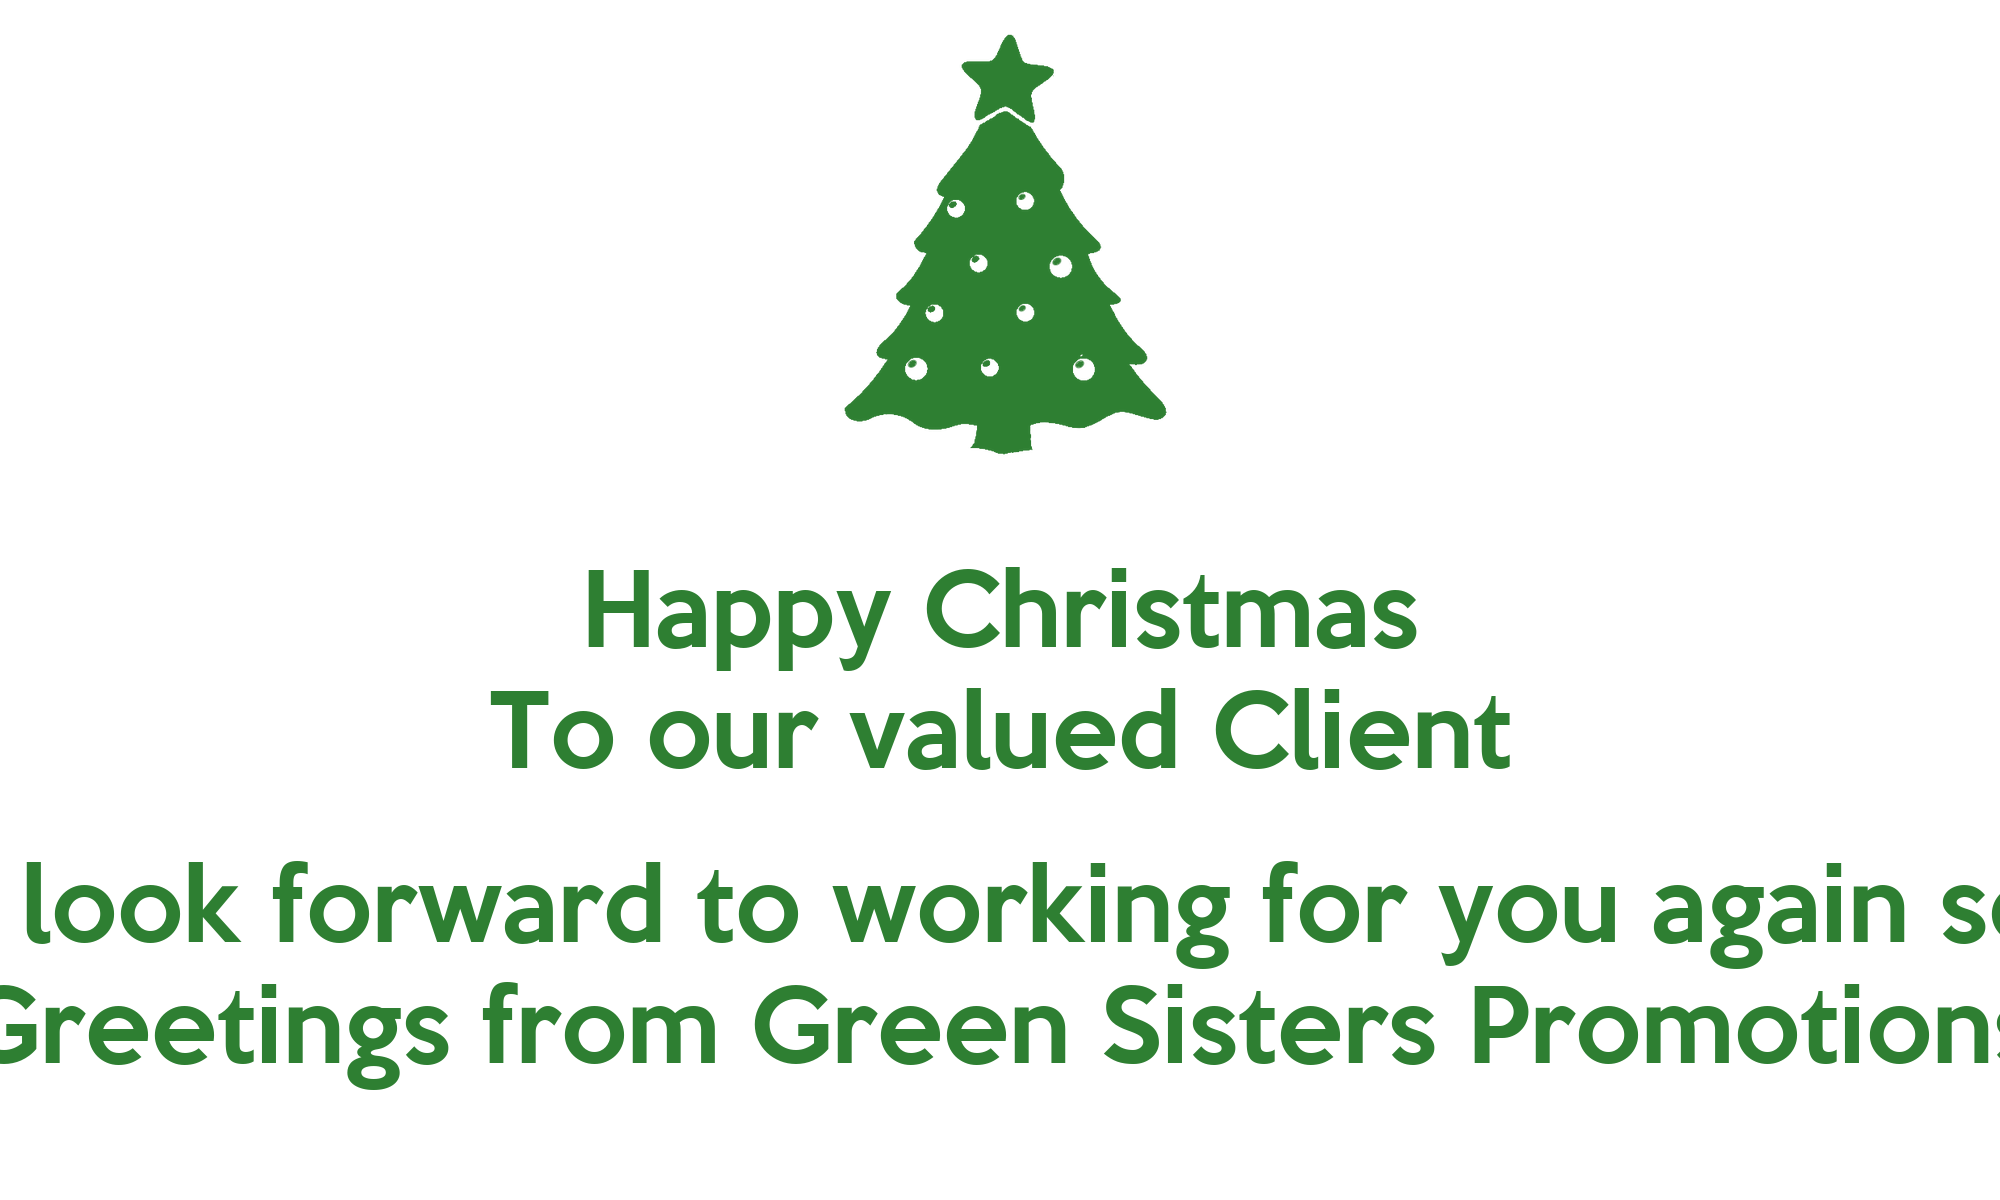 Happy Christmas To Our Valued Client We Look Forward To Working For